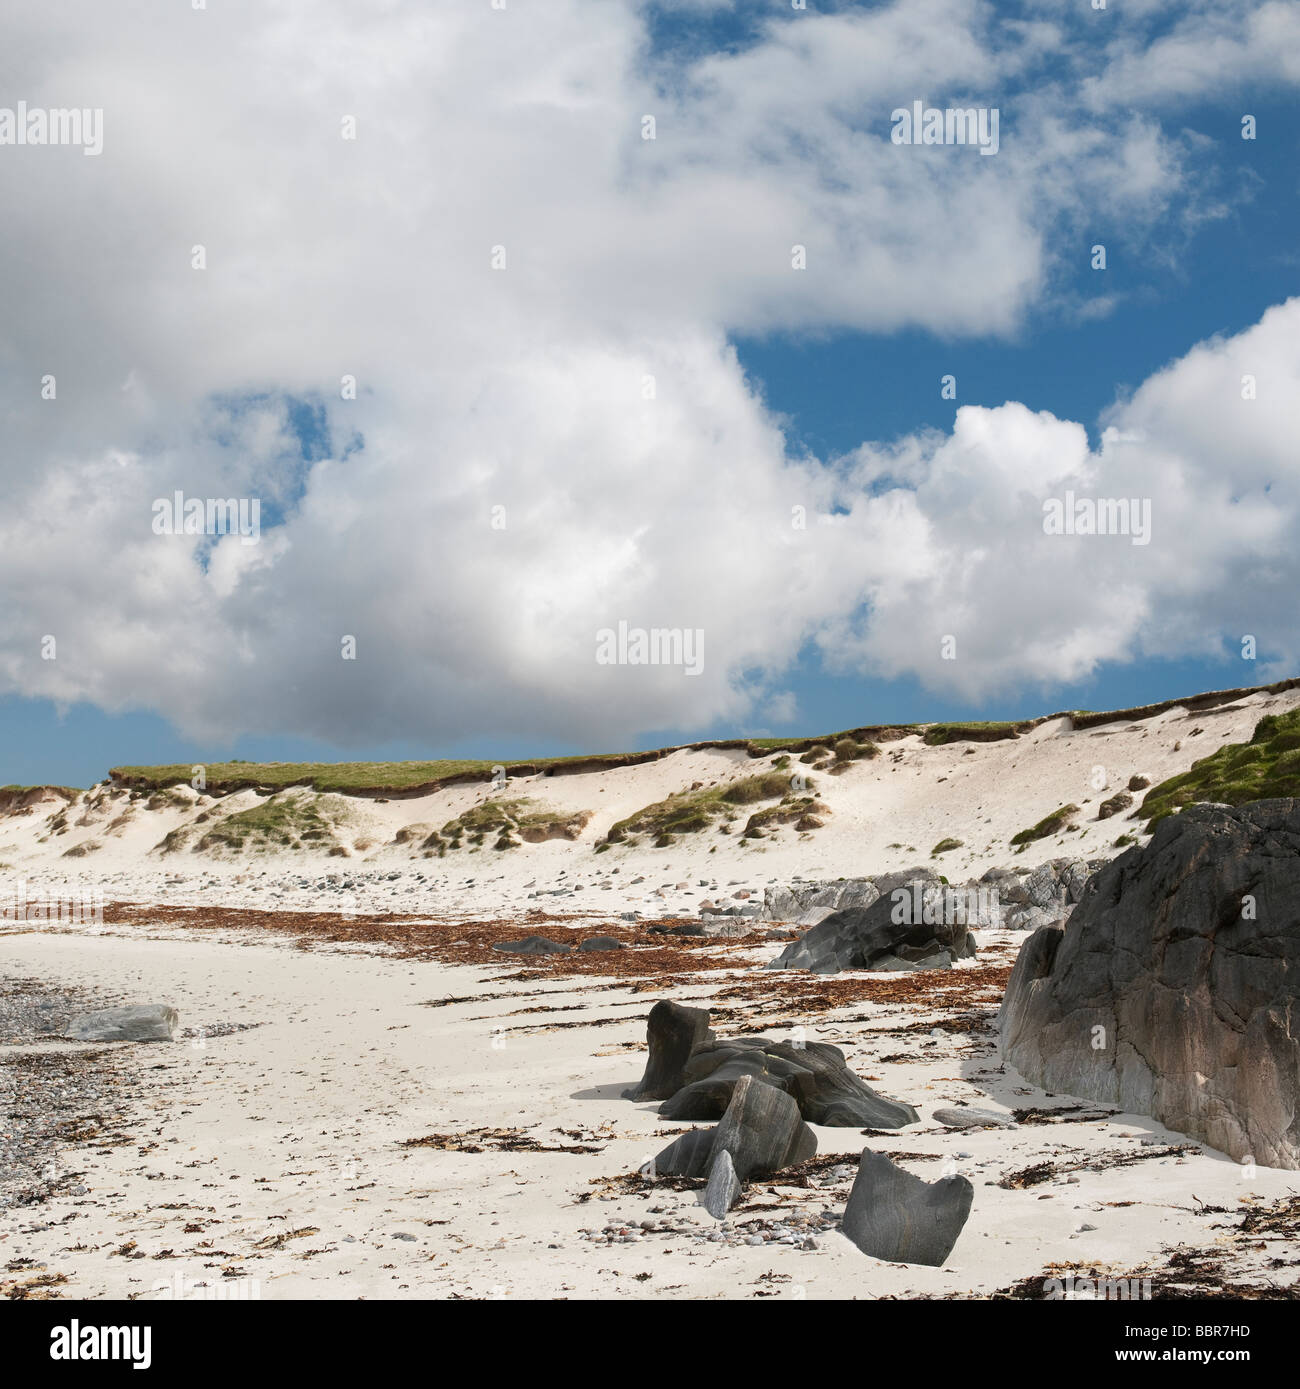 North Uist beach, Outer Hebrides, Scotland - Stock Image